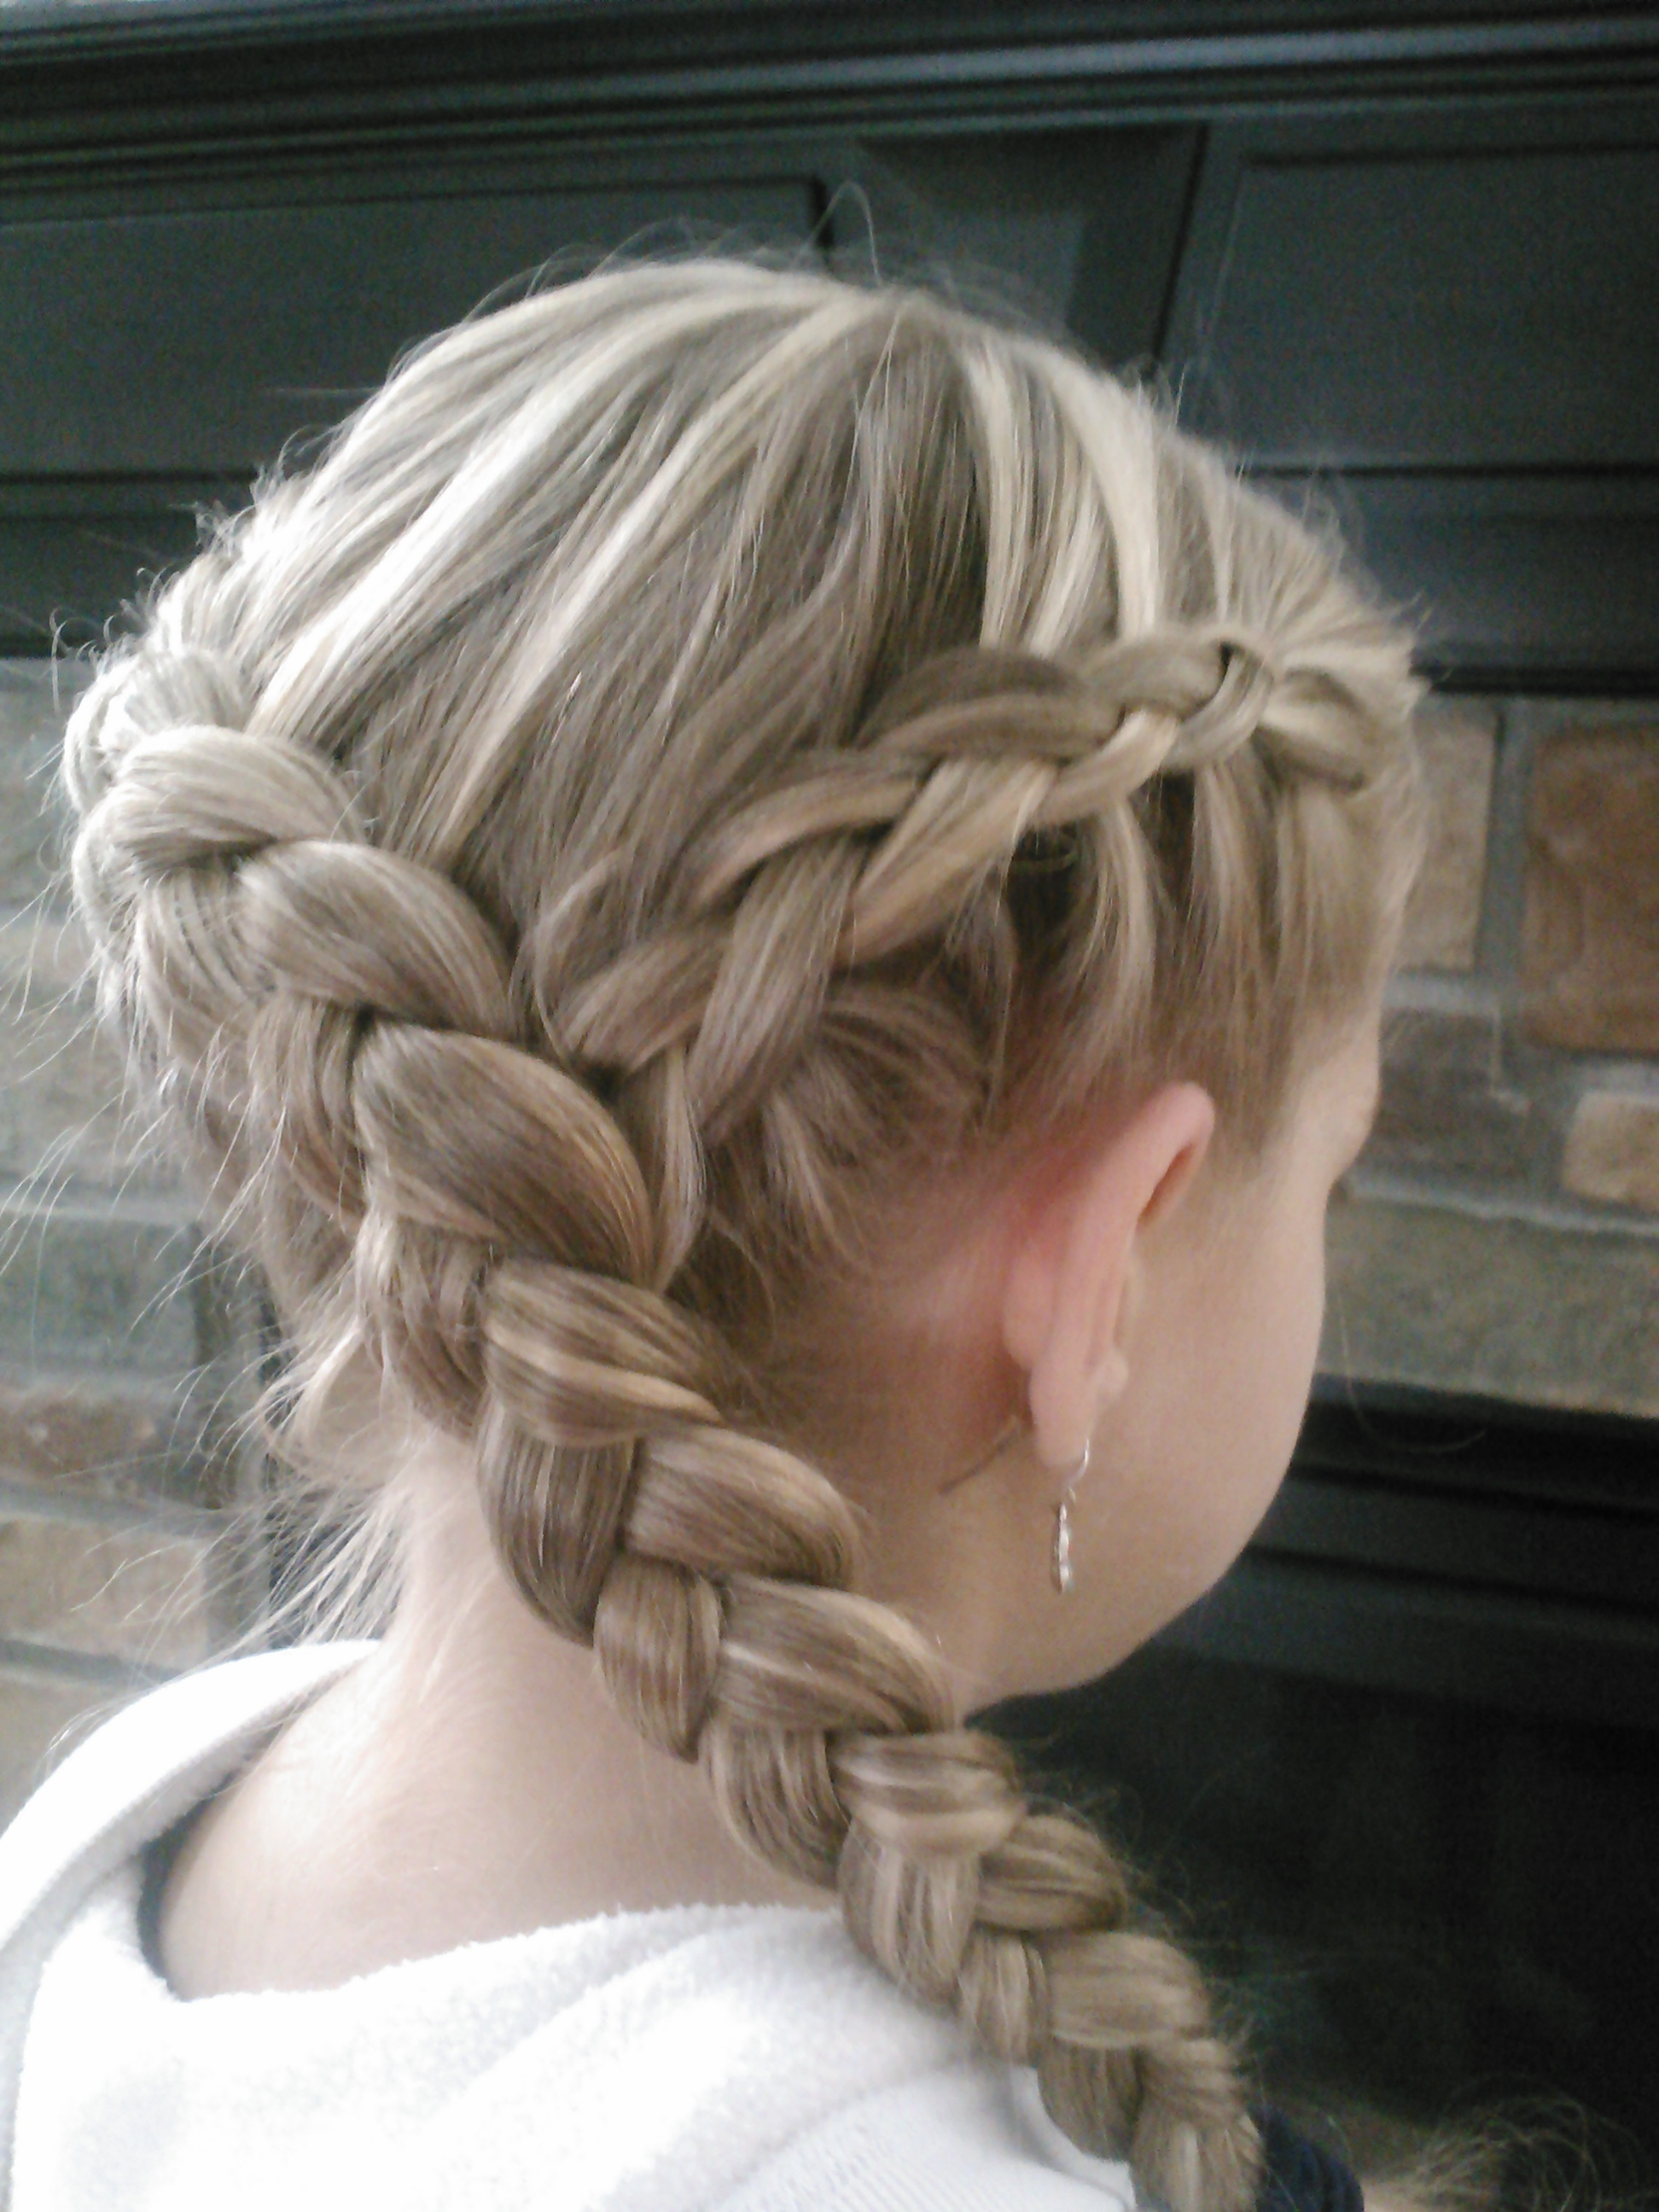 Pretty Hair Is Fun: {Hunger Games} Katniss Hairstyle: How